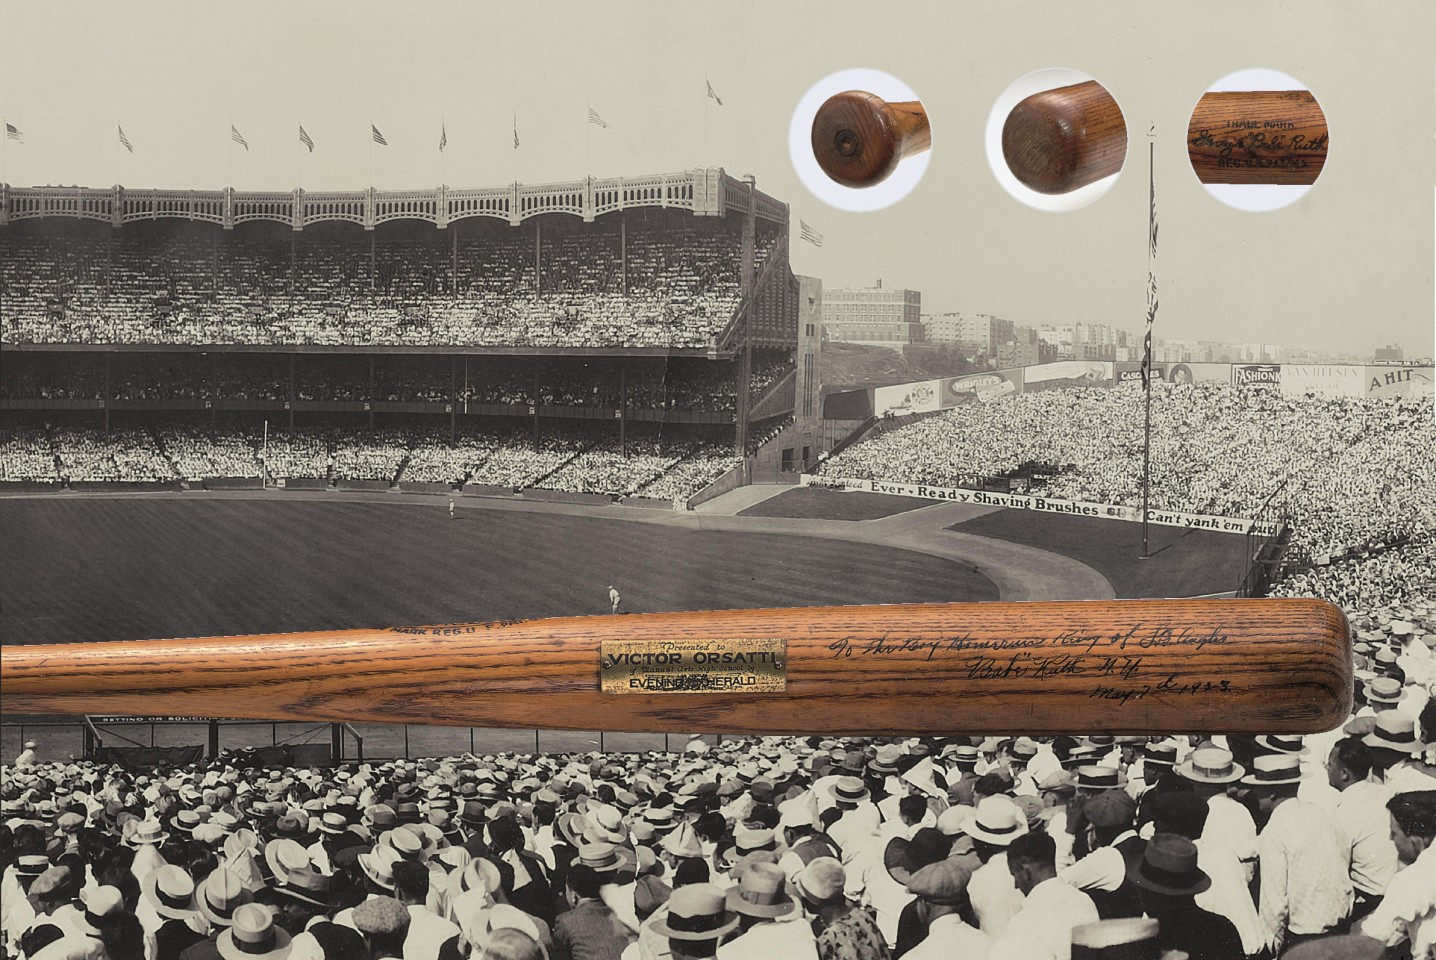 Babe Ruth 1923 Baseball Bat | Auction House: Sotheby's/SCP | Price fetched: $1,265,000 | Auctioned: December 2, 2004